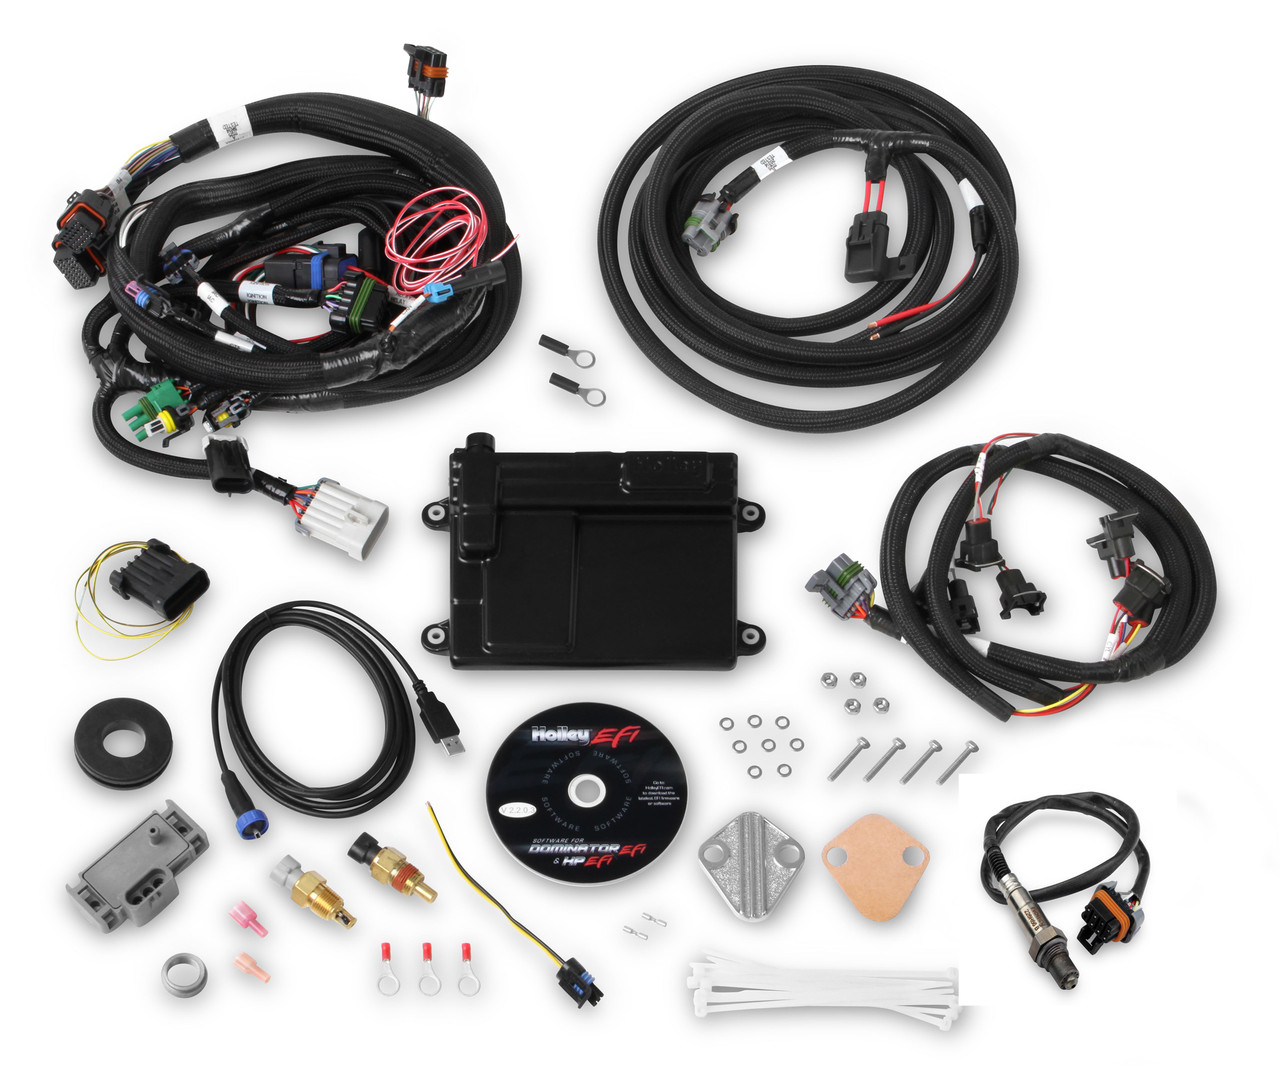 holley hp efi engine management kit fits 86 93 302 351w anderson for a ford 302 wiring harness kits [ 1280 x 1090 Pixel ]